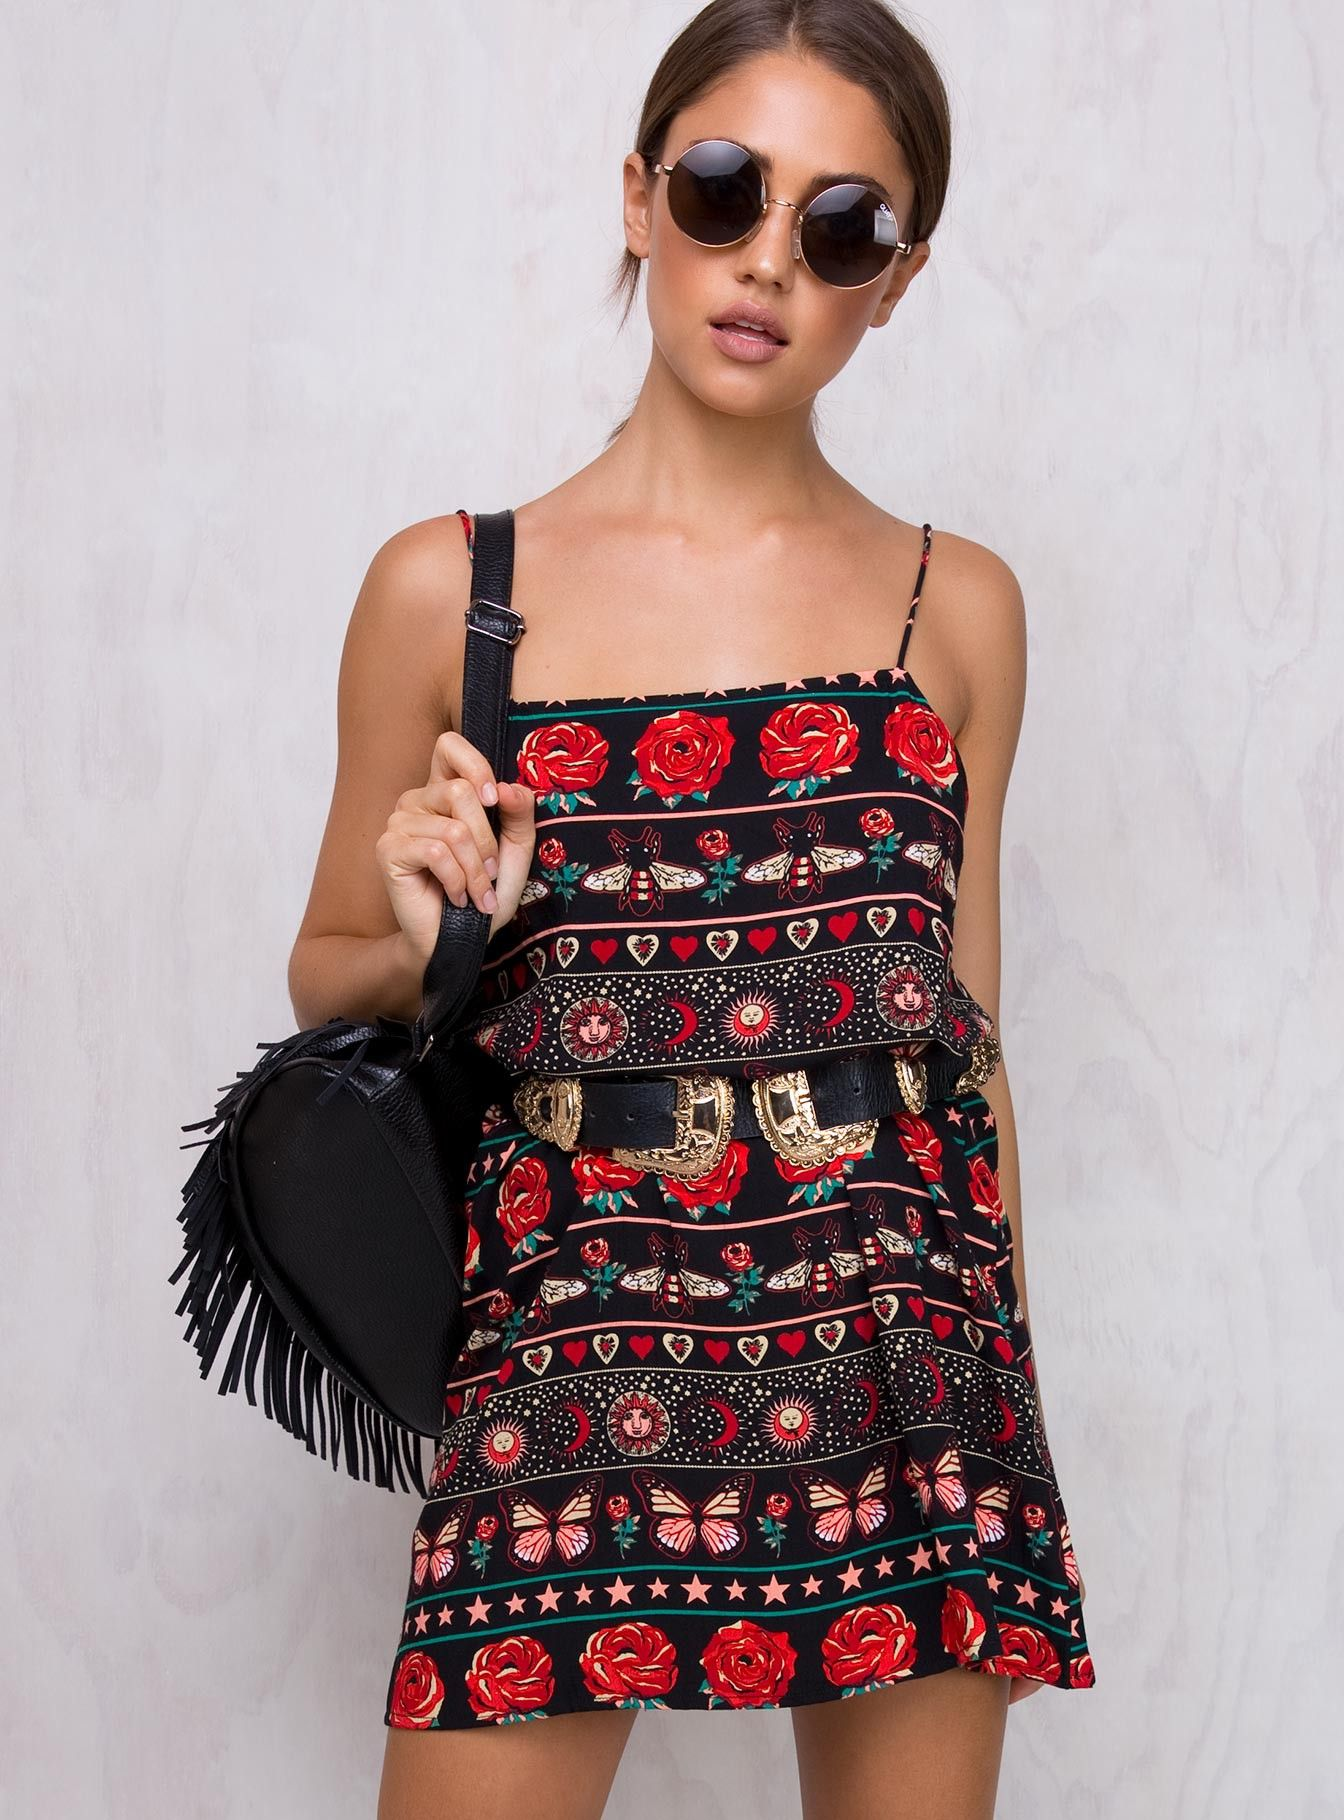 Pin on Spring and Summer Style